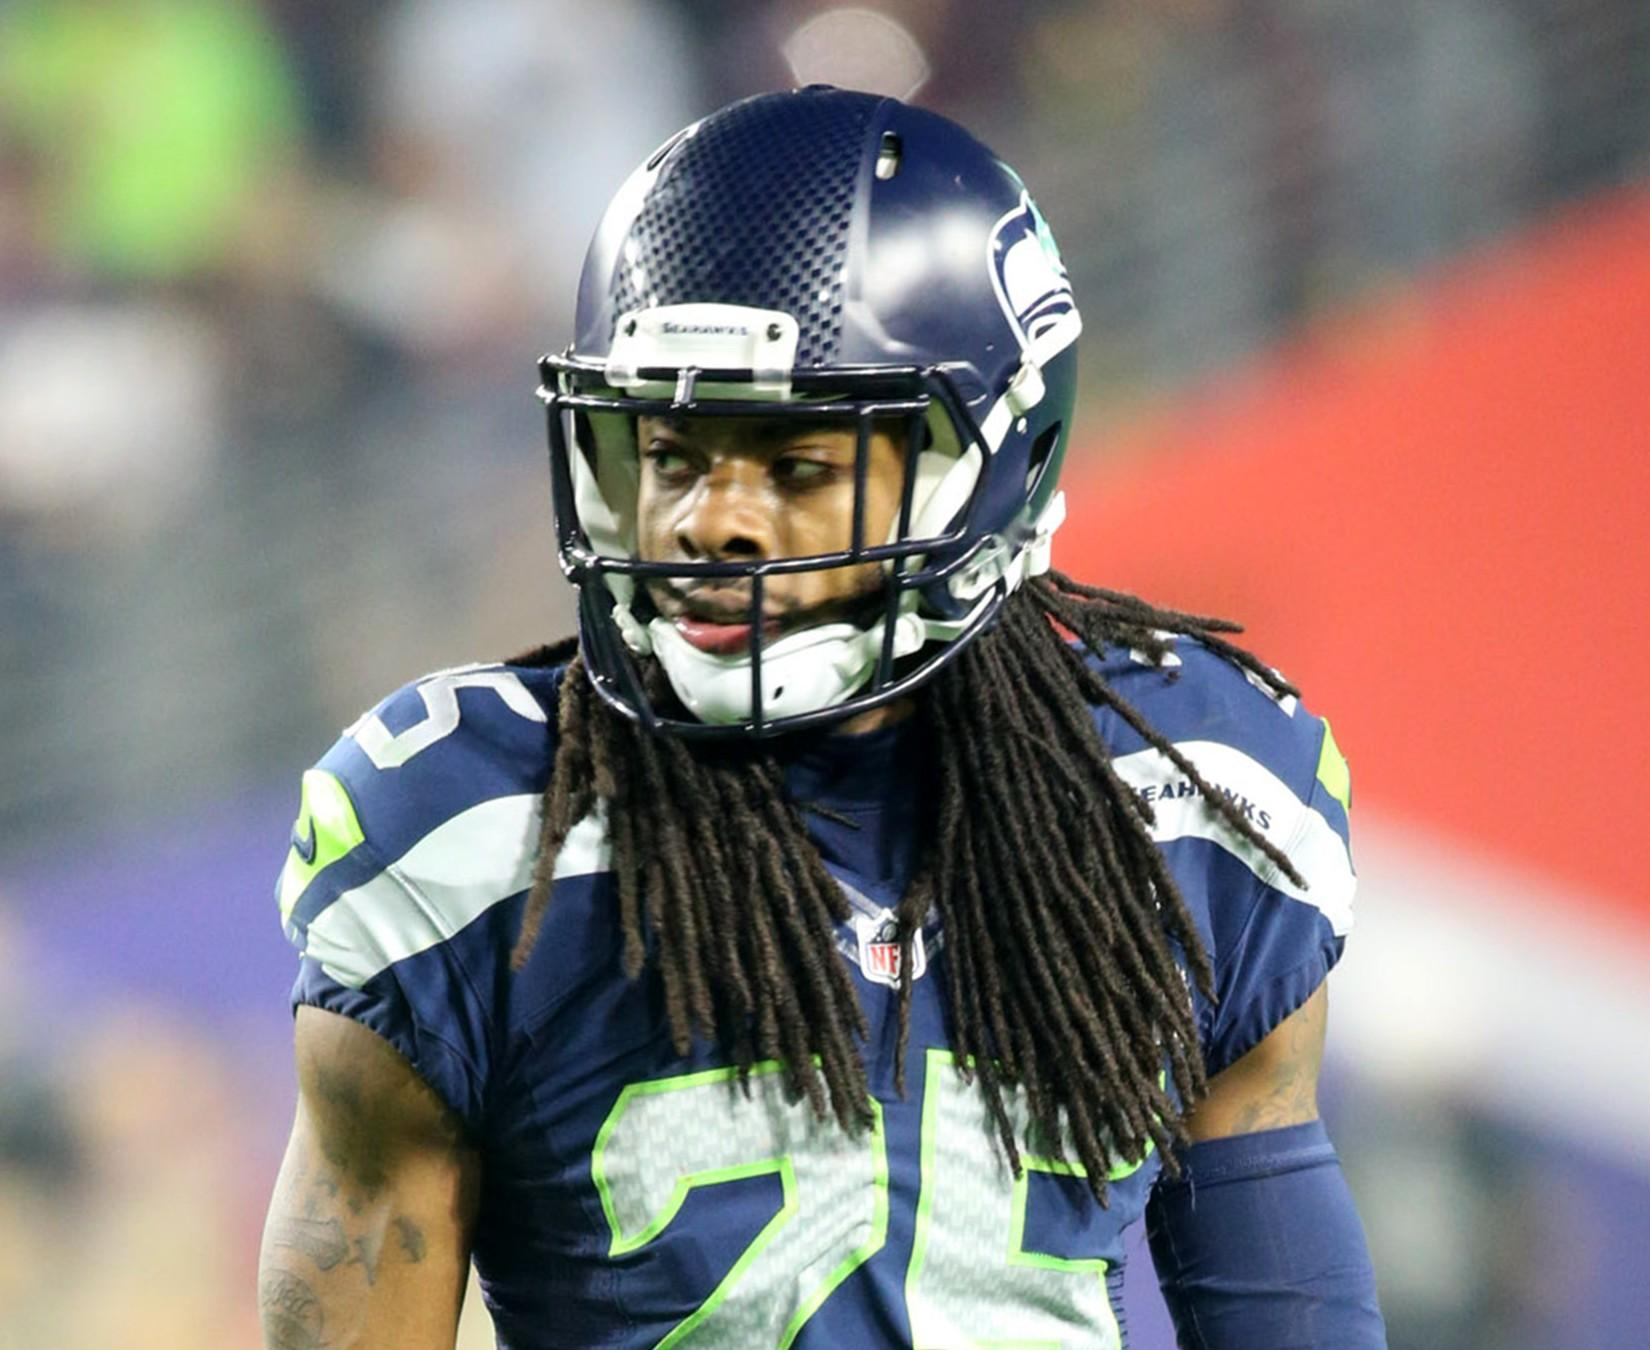 After falling inches short of a repeat, how will the Seattle Seahawks approach the 2015 offseason?